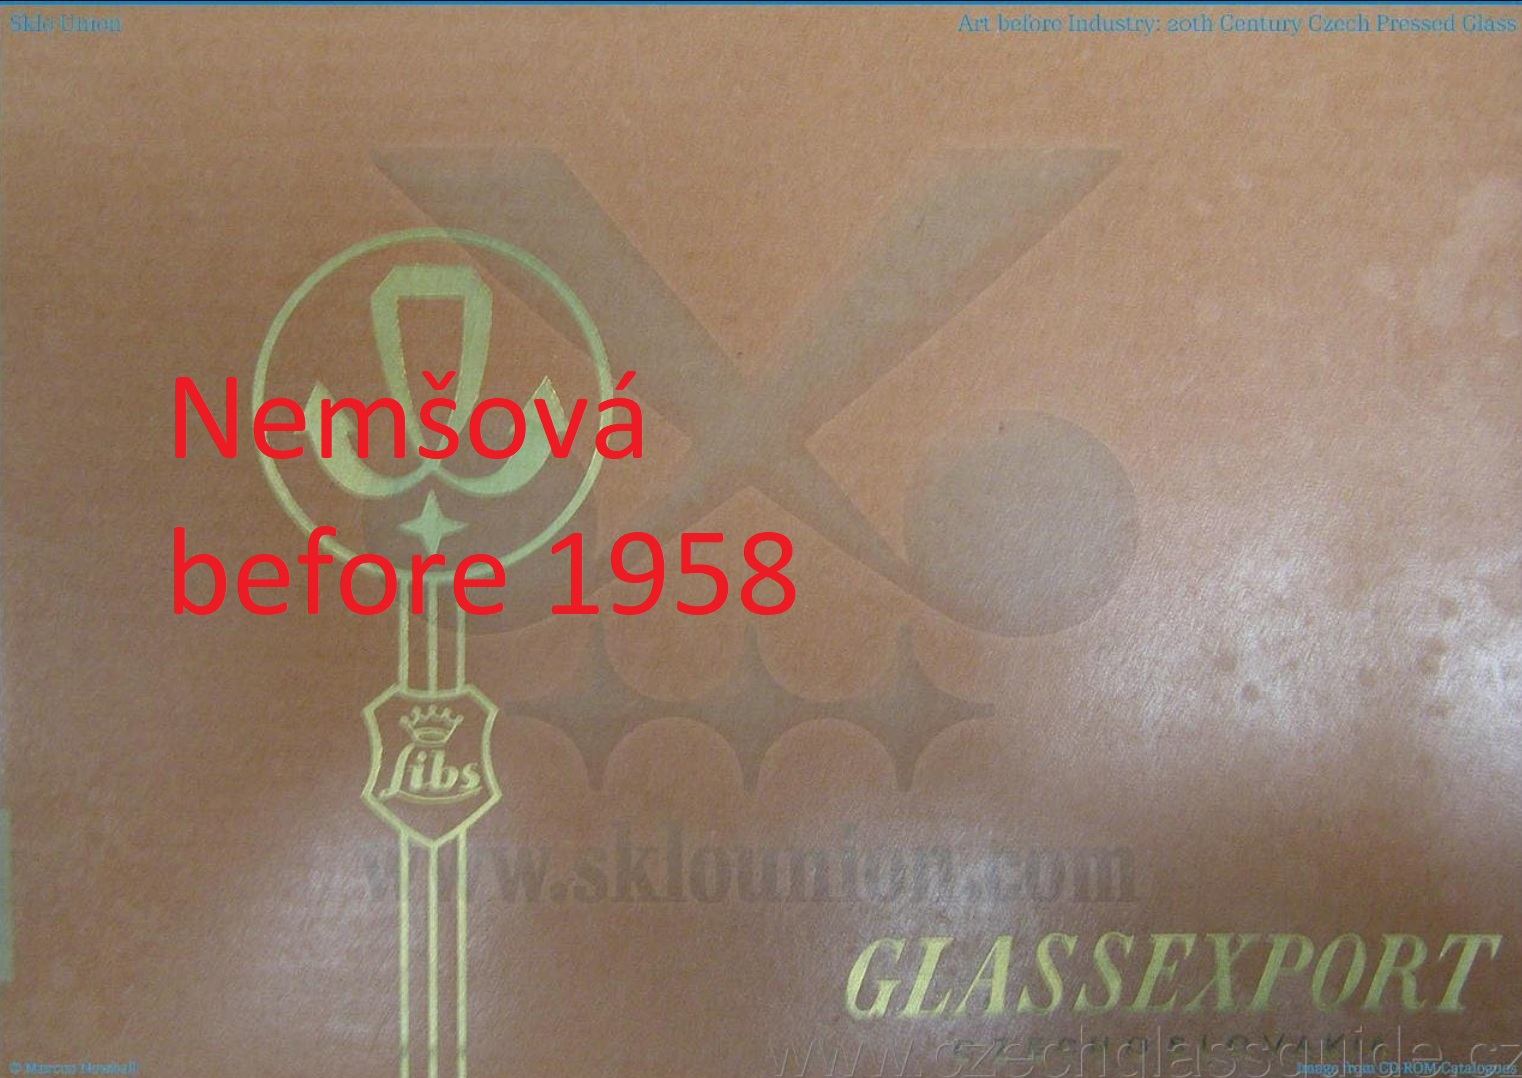 Nemšová - Glassexport before 1958